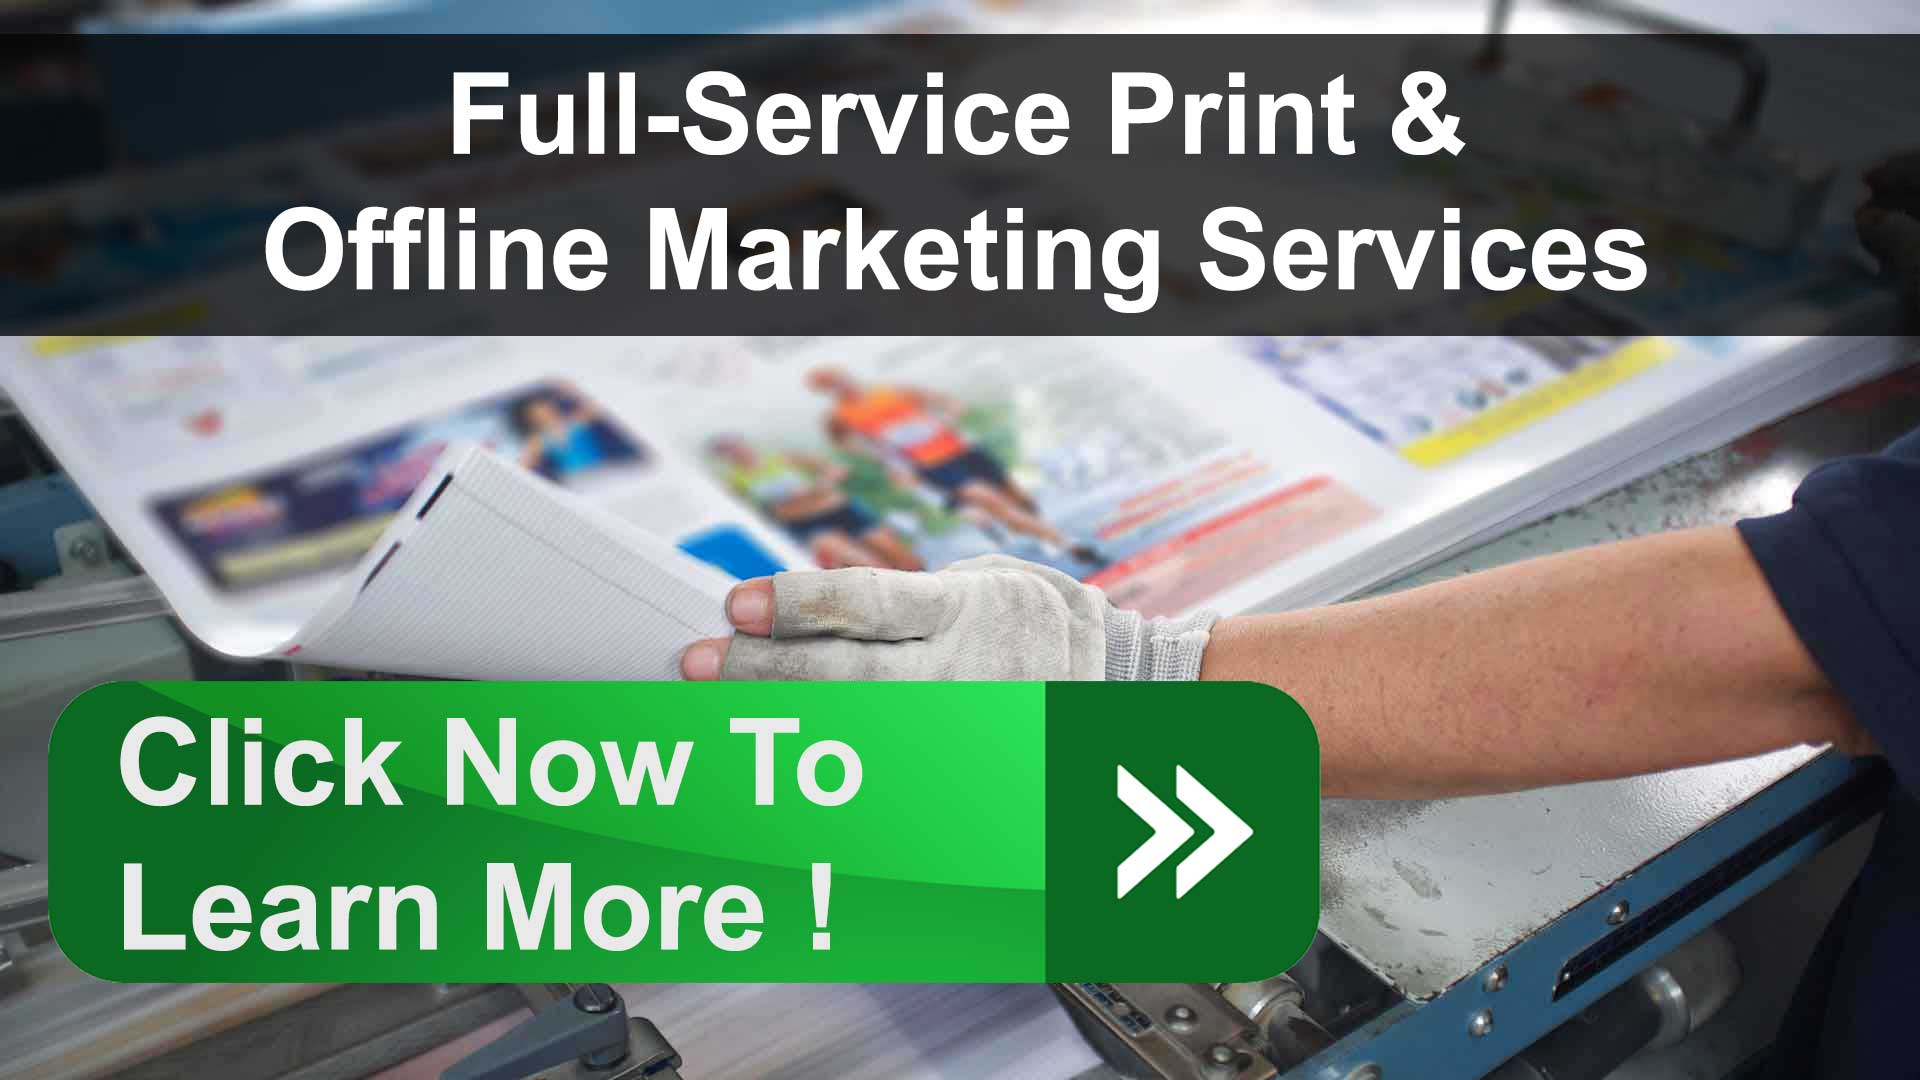 Full-Service Print & Offline Marketing Services